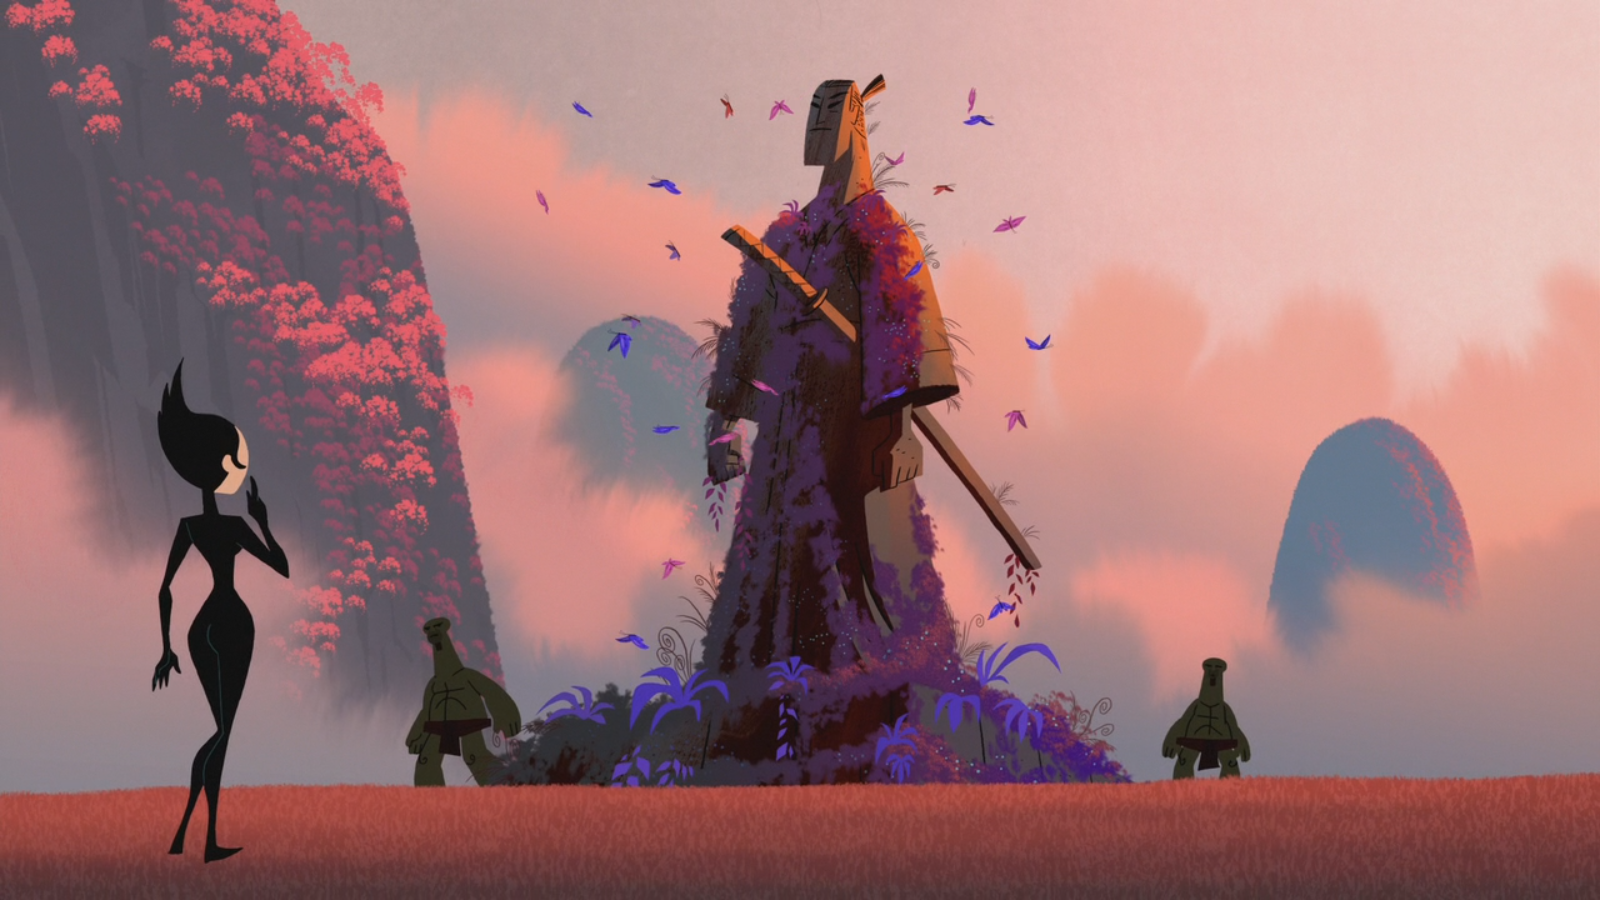 Samurai Jack Ashi Wallpaper Posted By Zoey Anderson